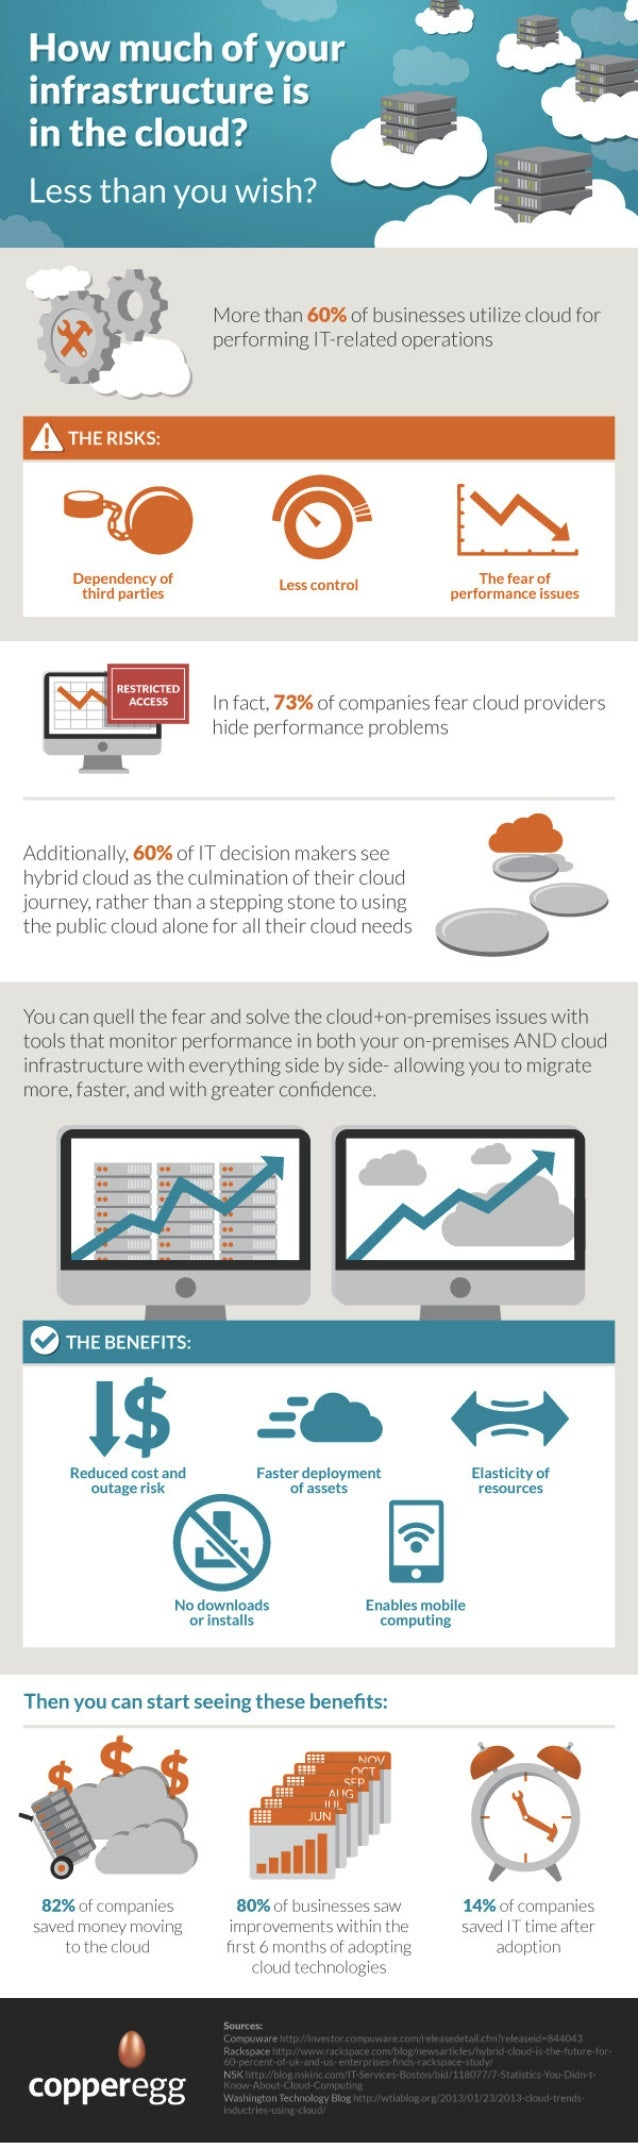 Infographic: How much of your infrastructure is in the cloud?